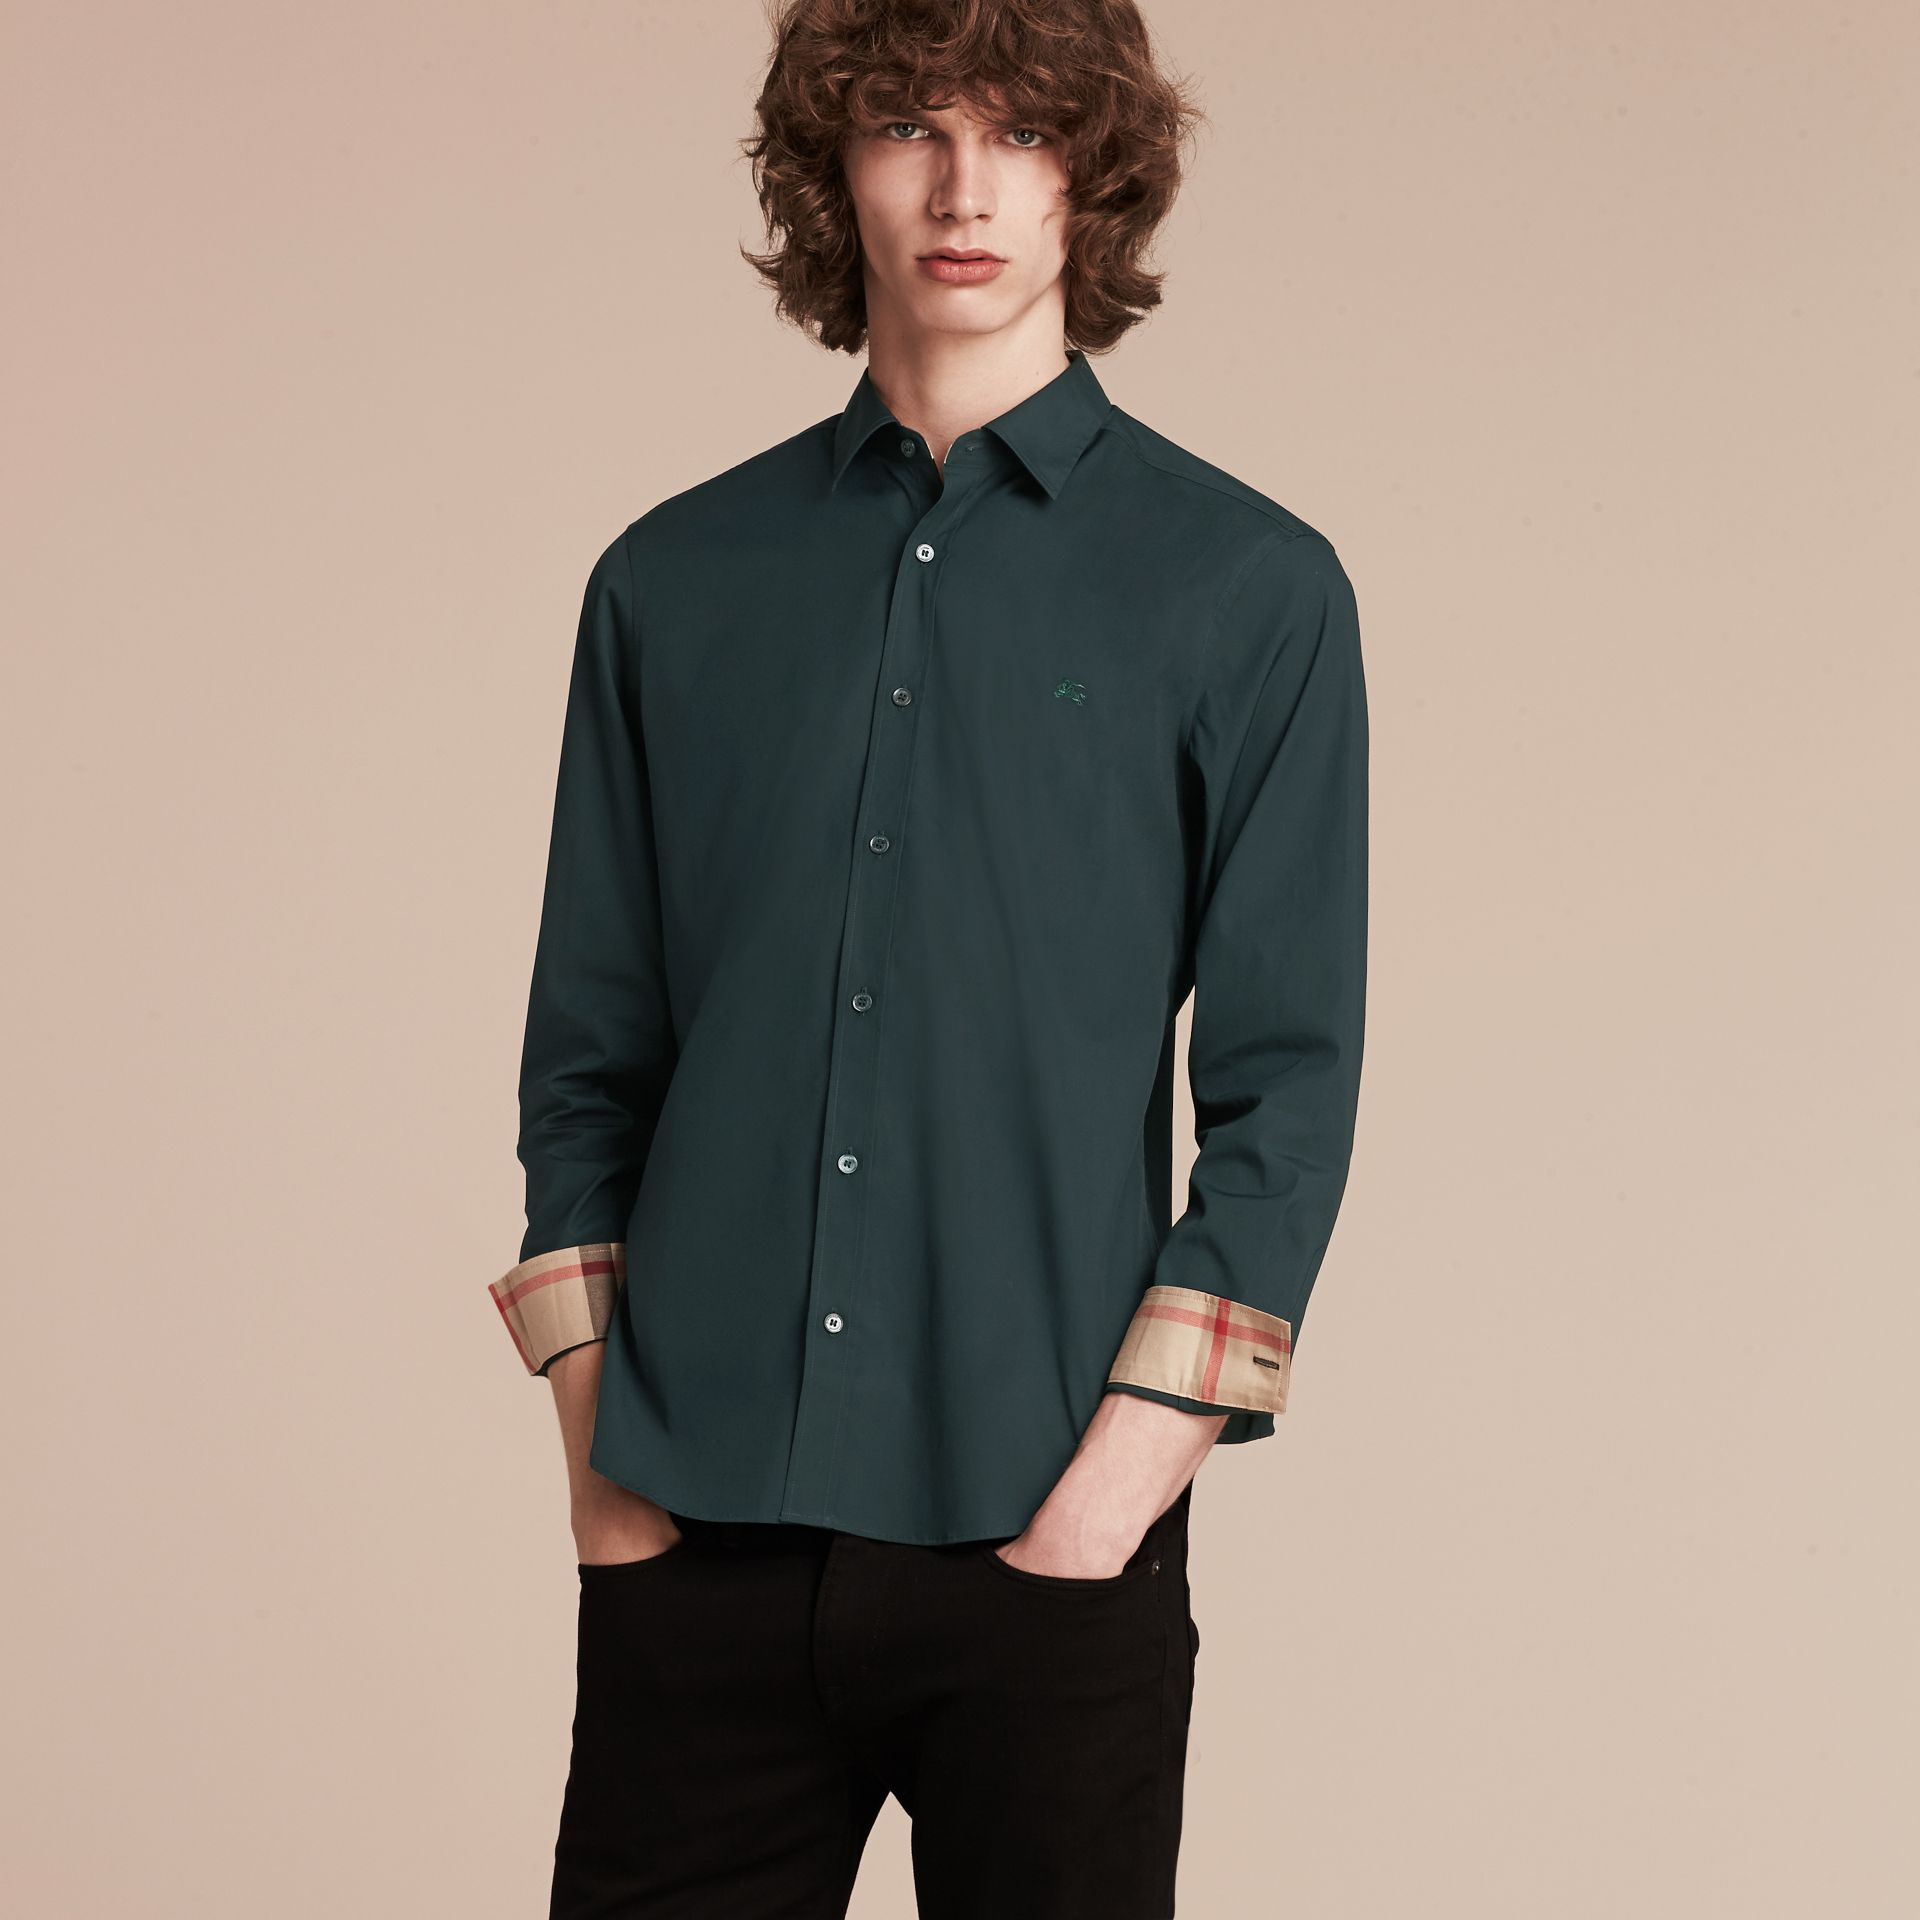 Dark teal green Check Detail Stretch Cotton Poplin Shirt Dark Teal Green - gallery image 6